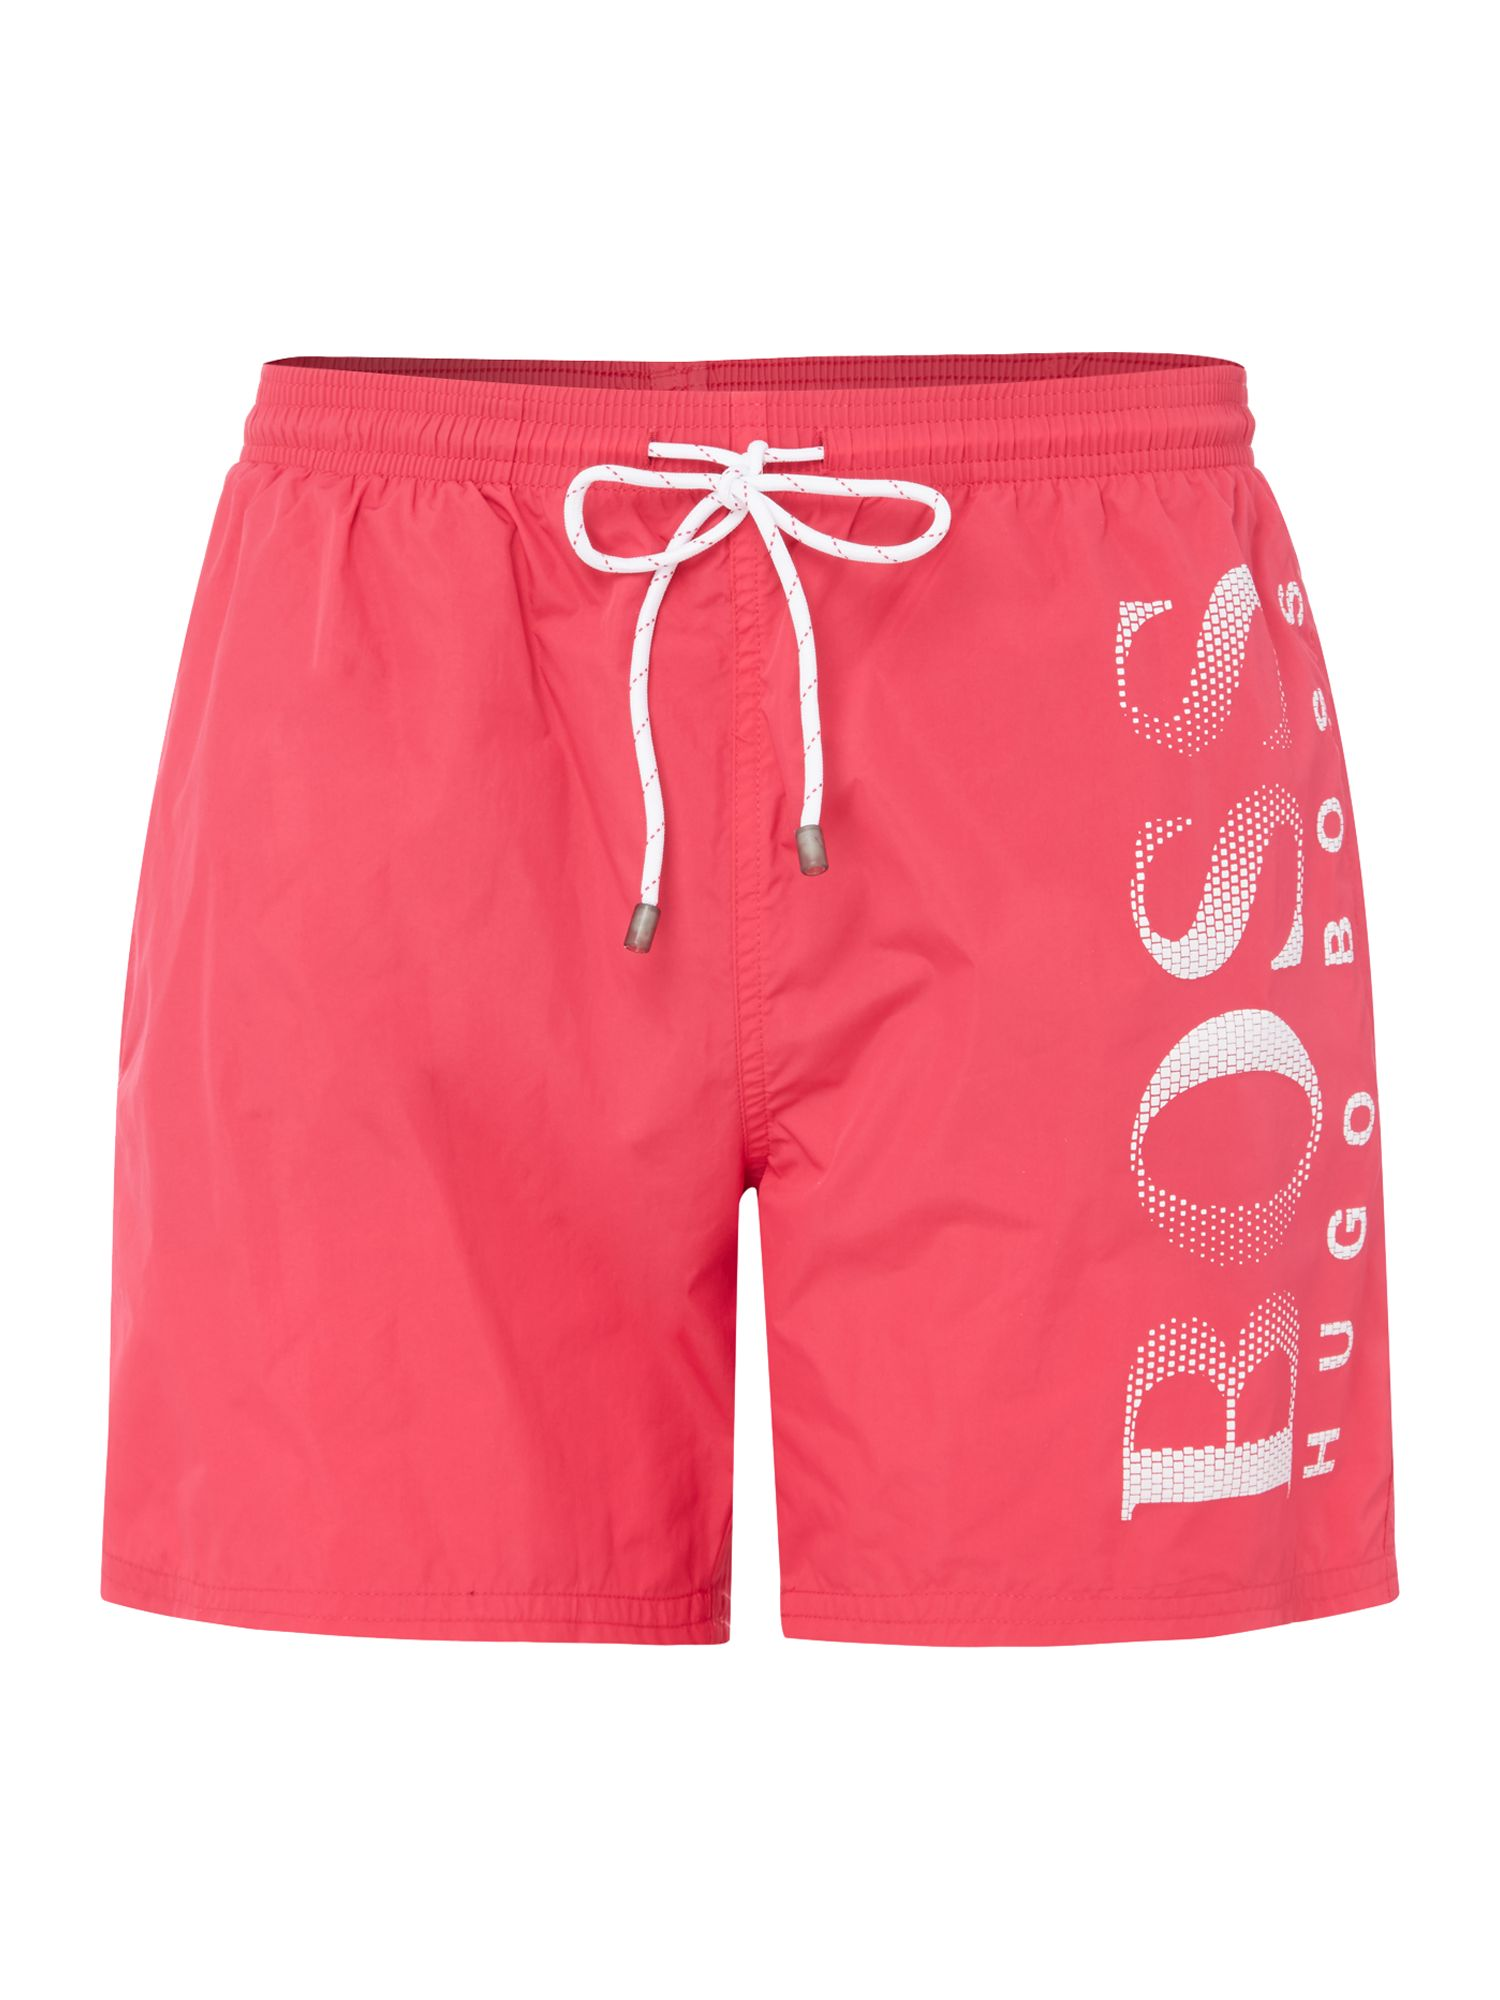 Men's Hugo Boss Octopus Swim Shorts, Pink